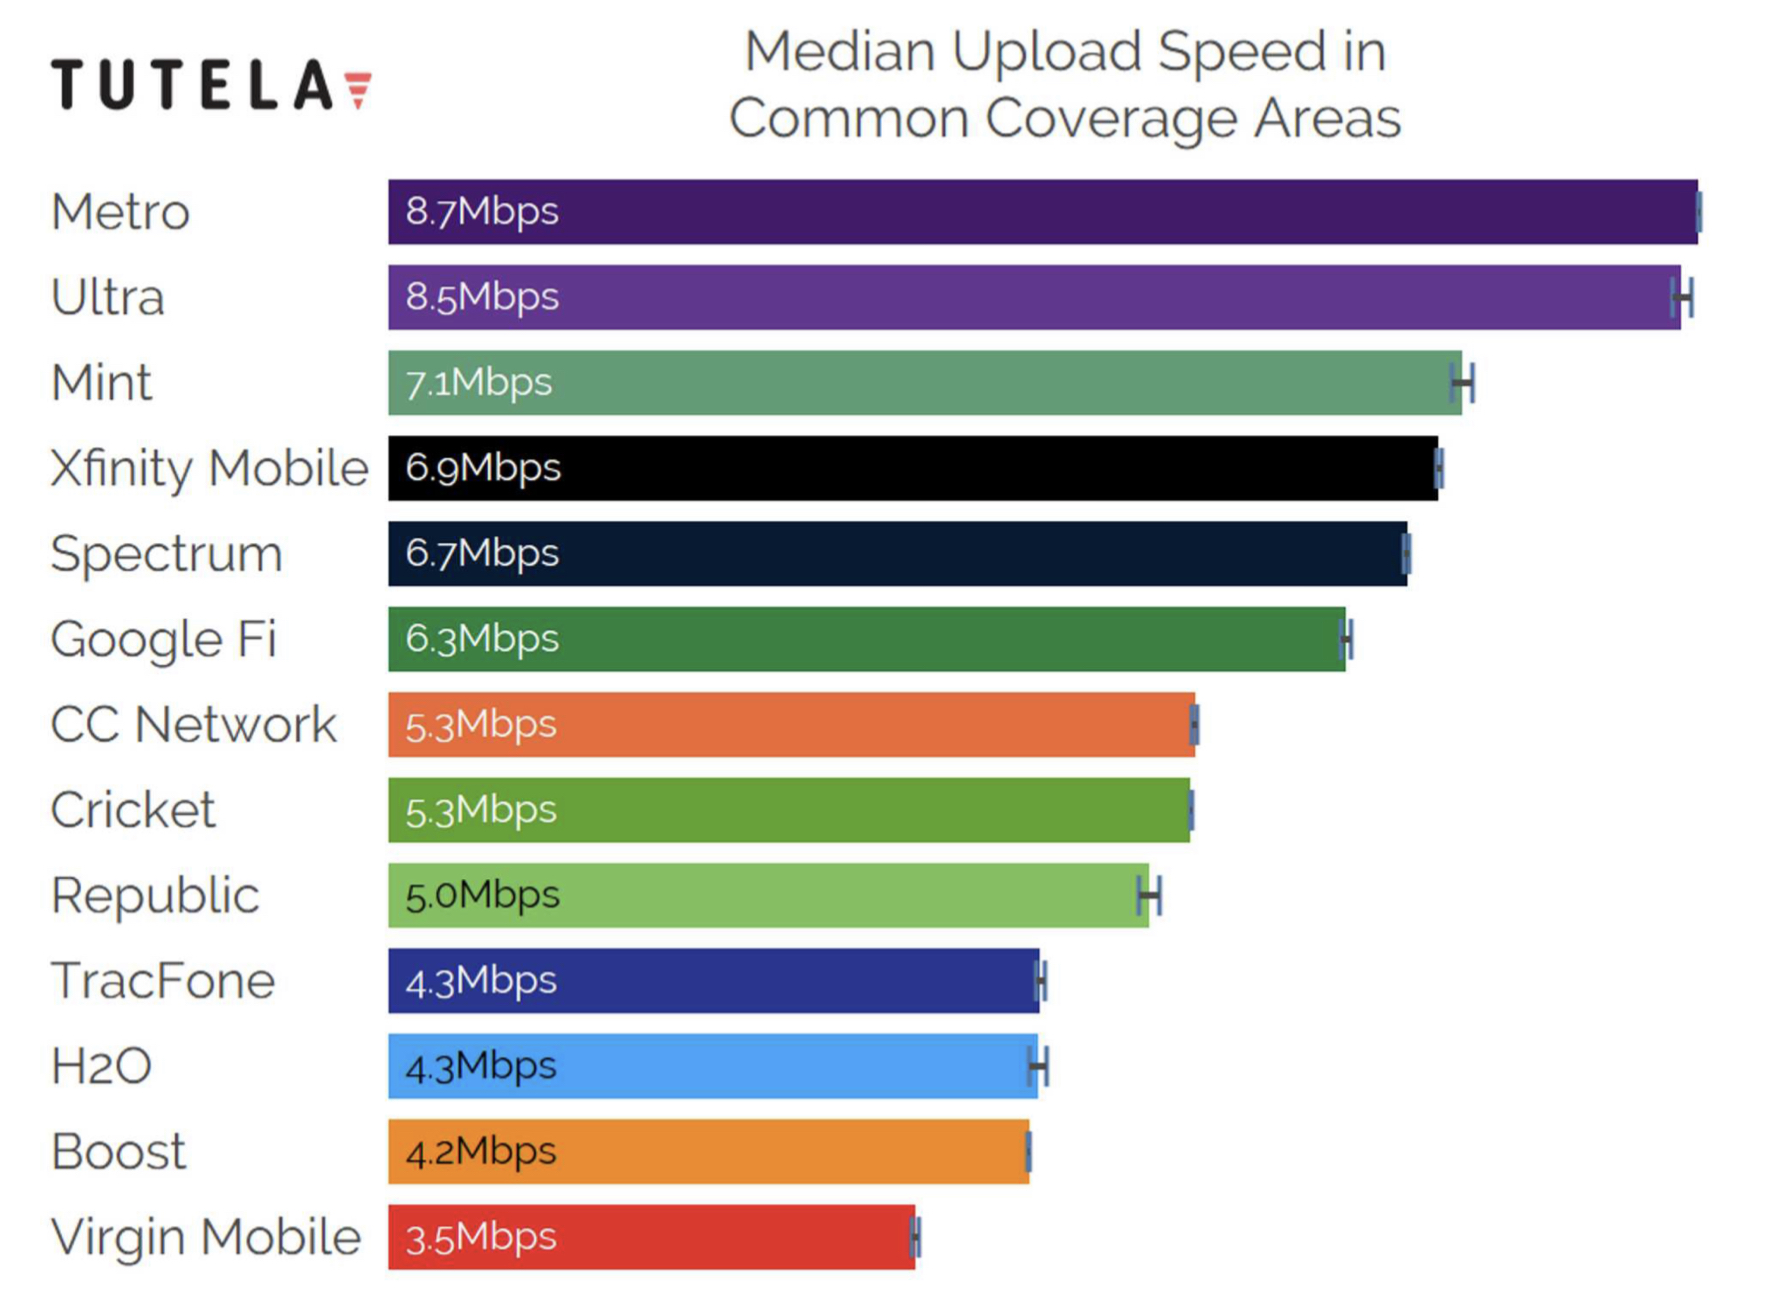 Trickut - Is Mint Mobile Coverage Good - mint mobile mint sim review - upload speed verage areas metro - ultra - cricket tracfone boost - virgin mobile